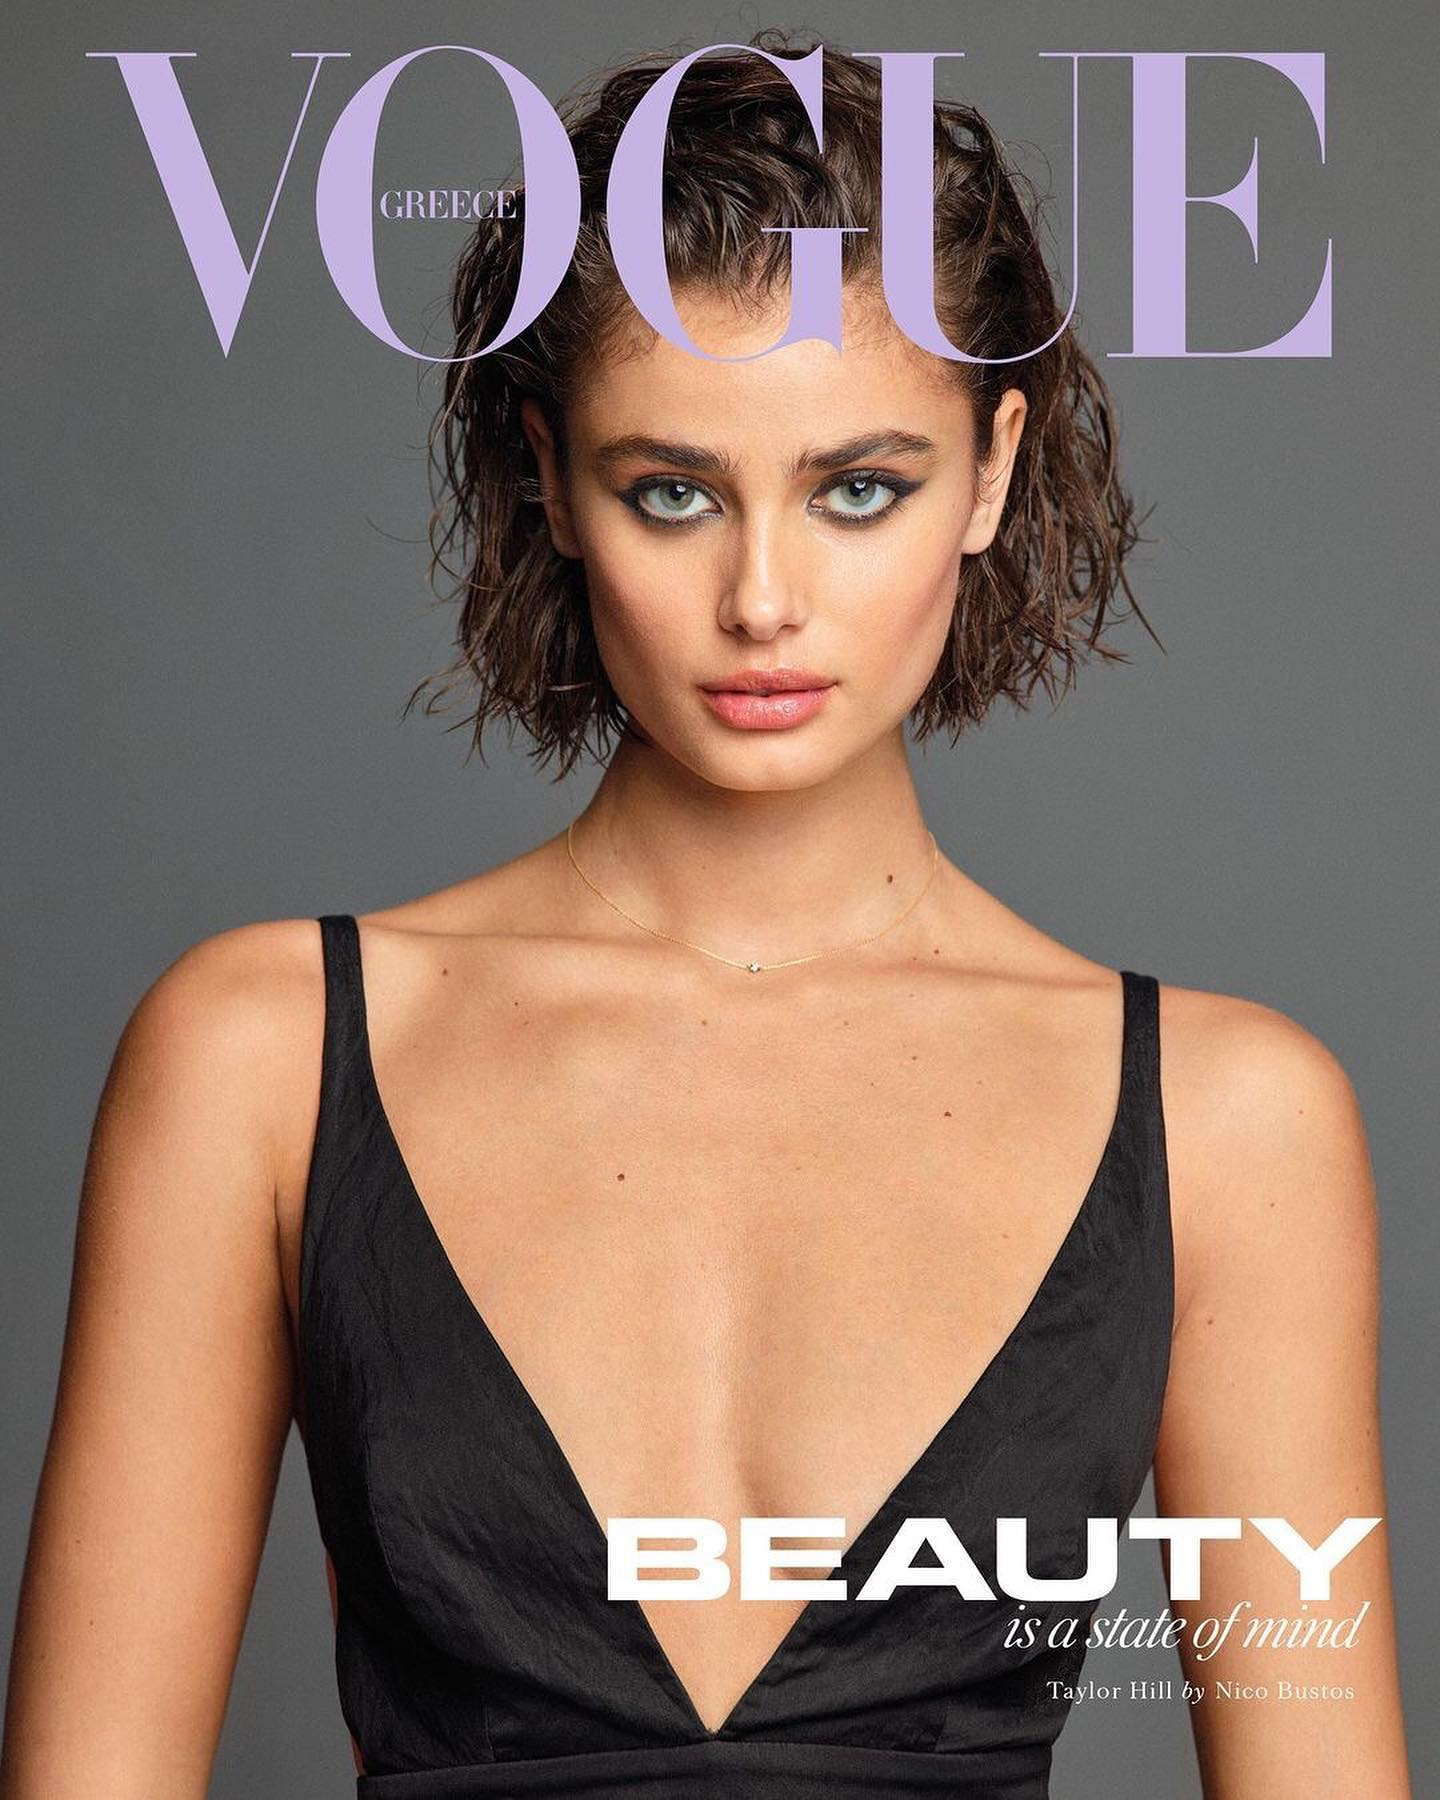 Vogue Greece January 2021